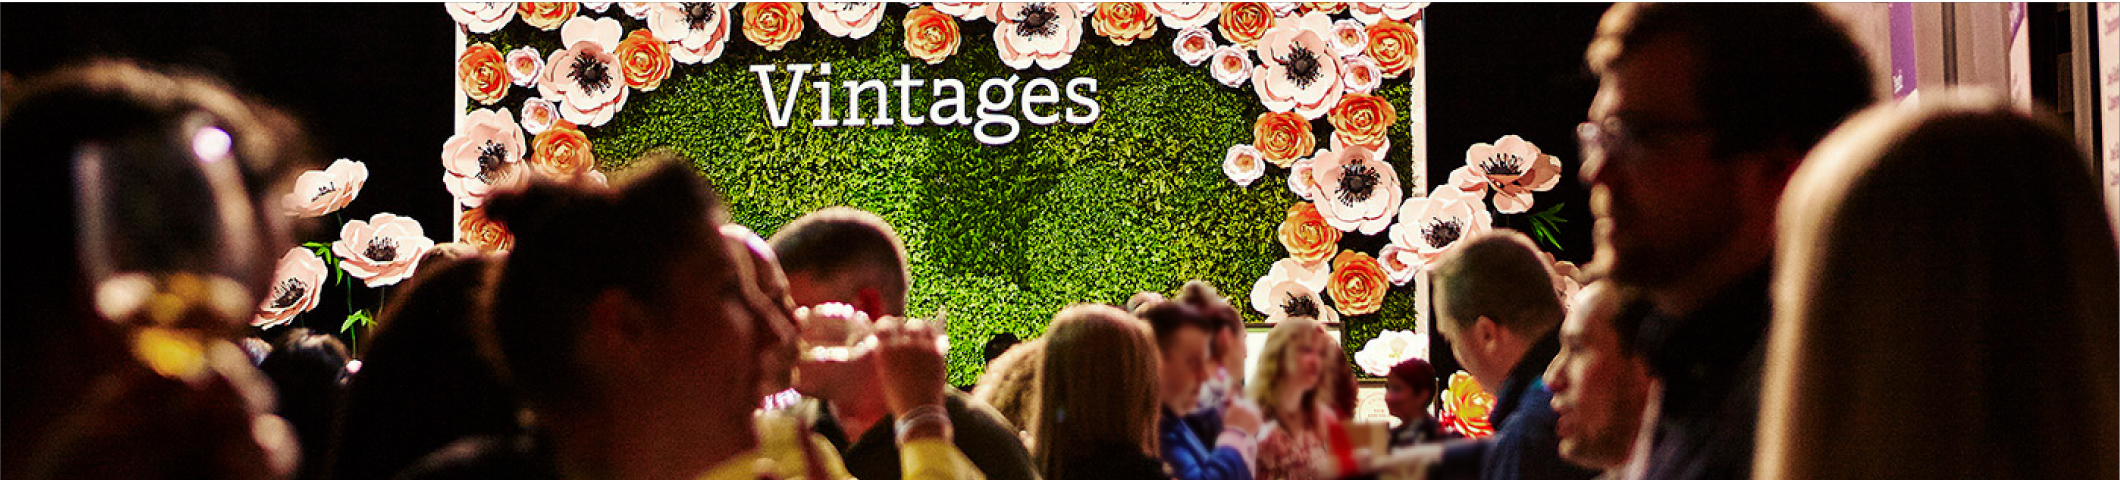 Vintages is ... Tasting Events